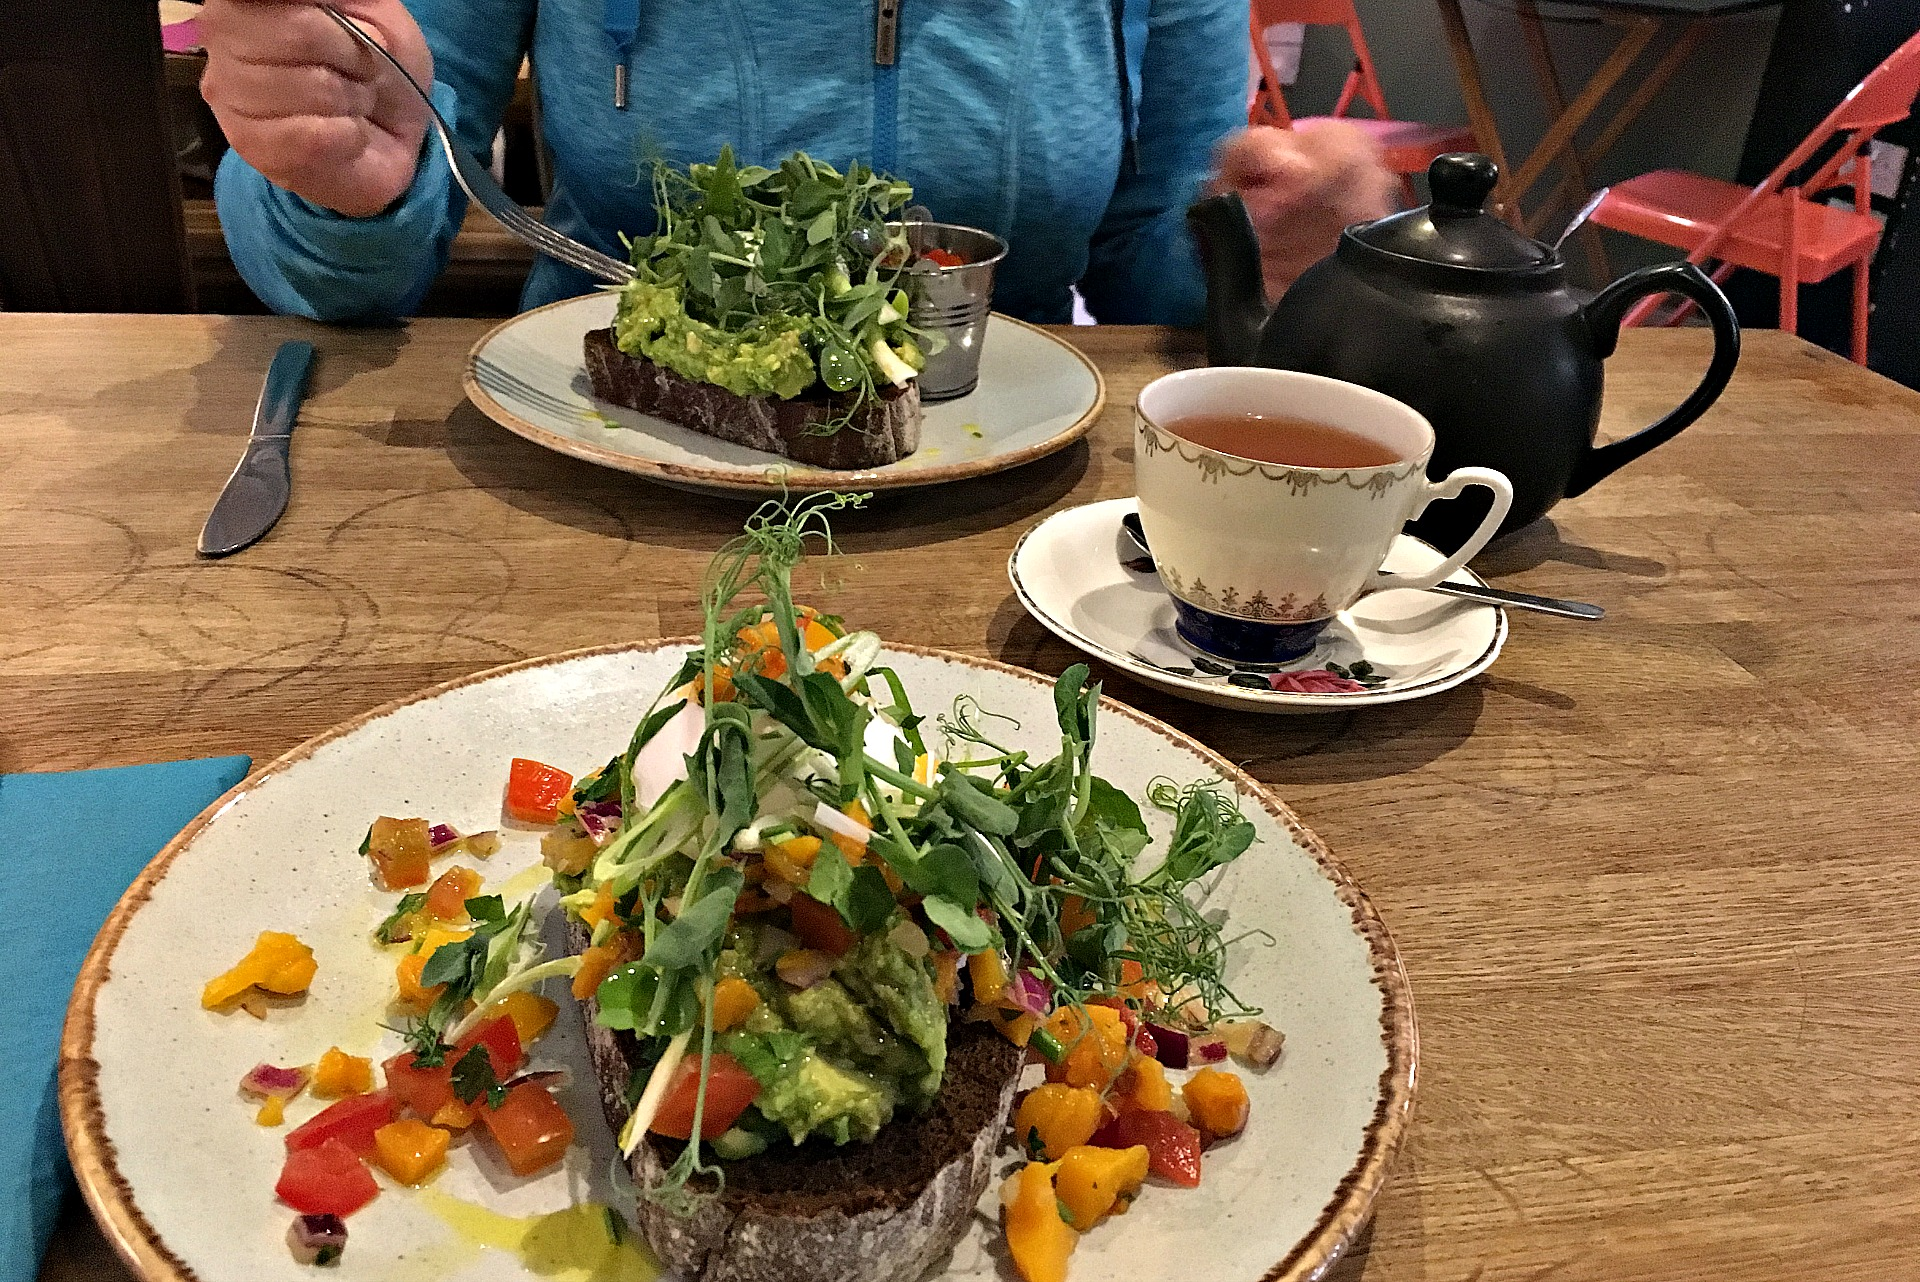 the best brunch is at the Pantry in Stockbridge